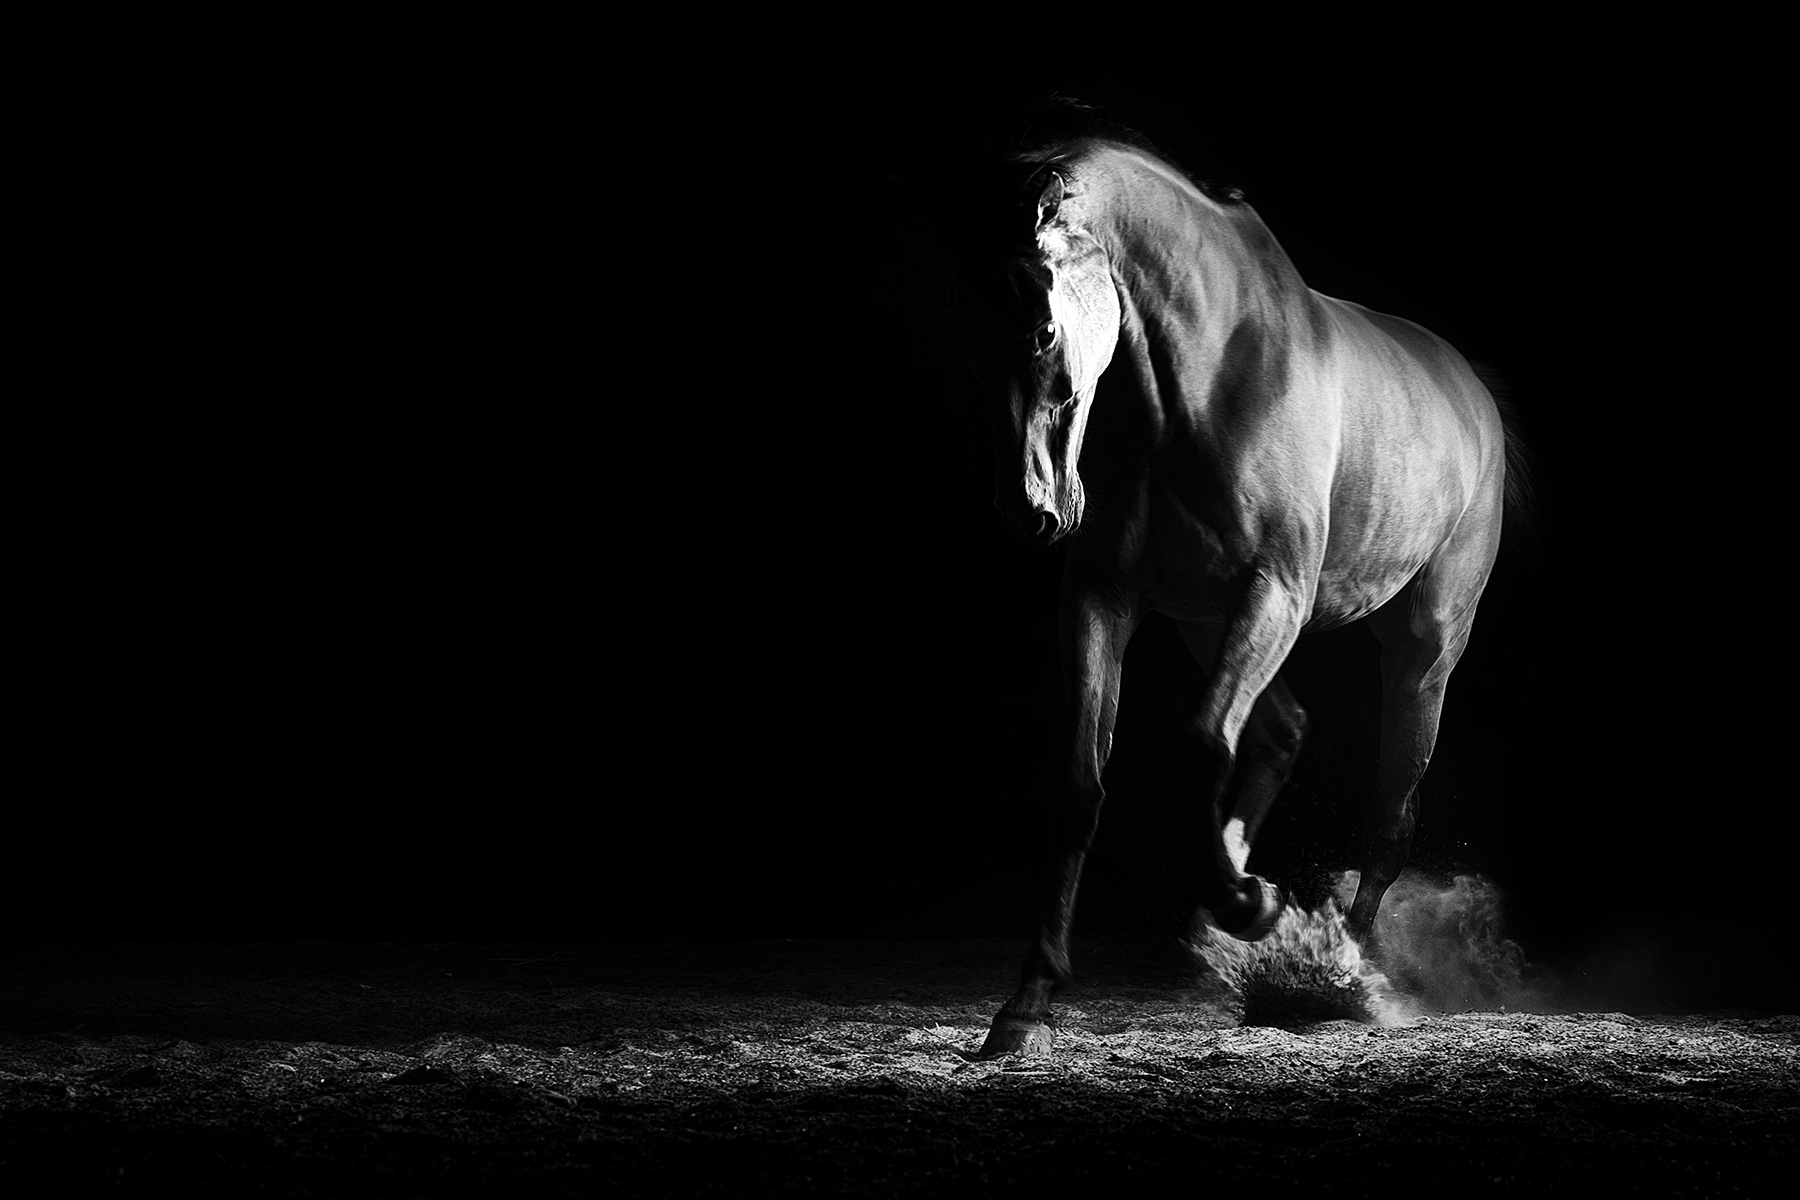 Black and white image of a Thoroughbred horse trotting